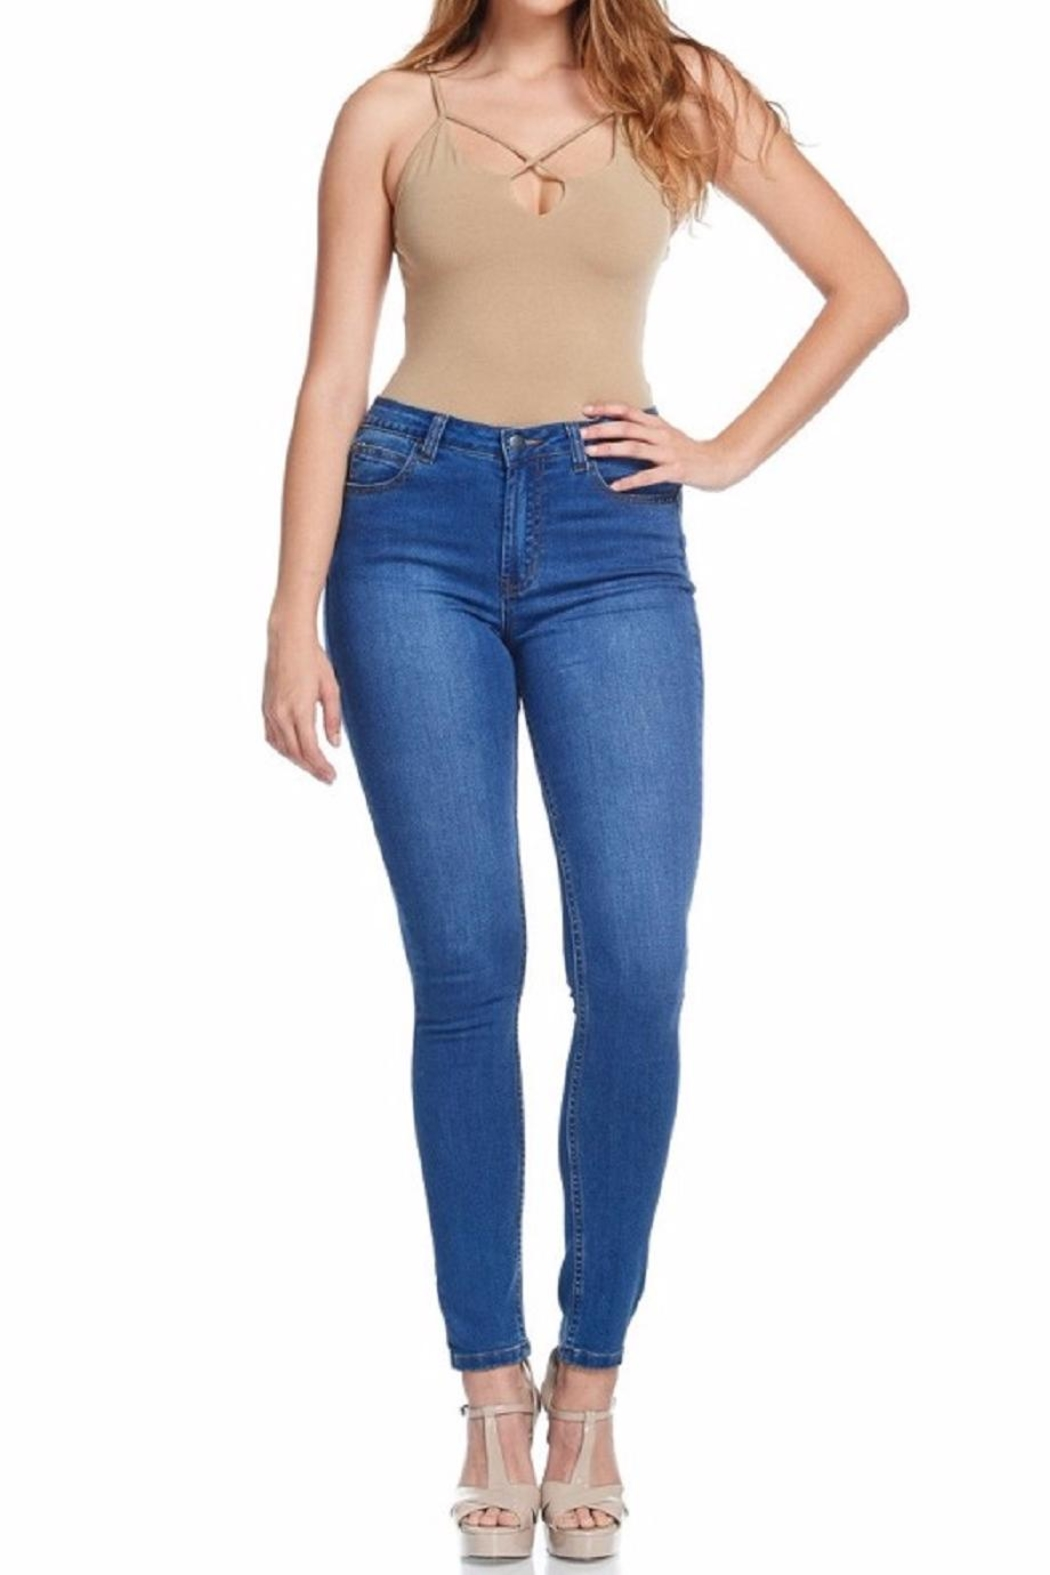 American Bazi Classic Blue Jeans - Front Cropped Image